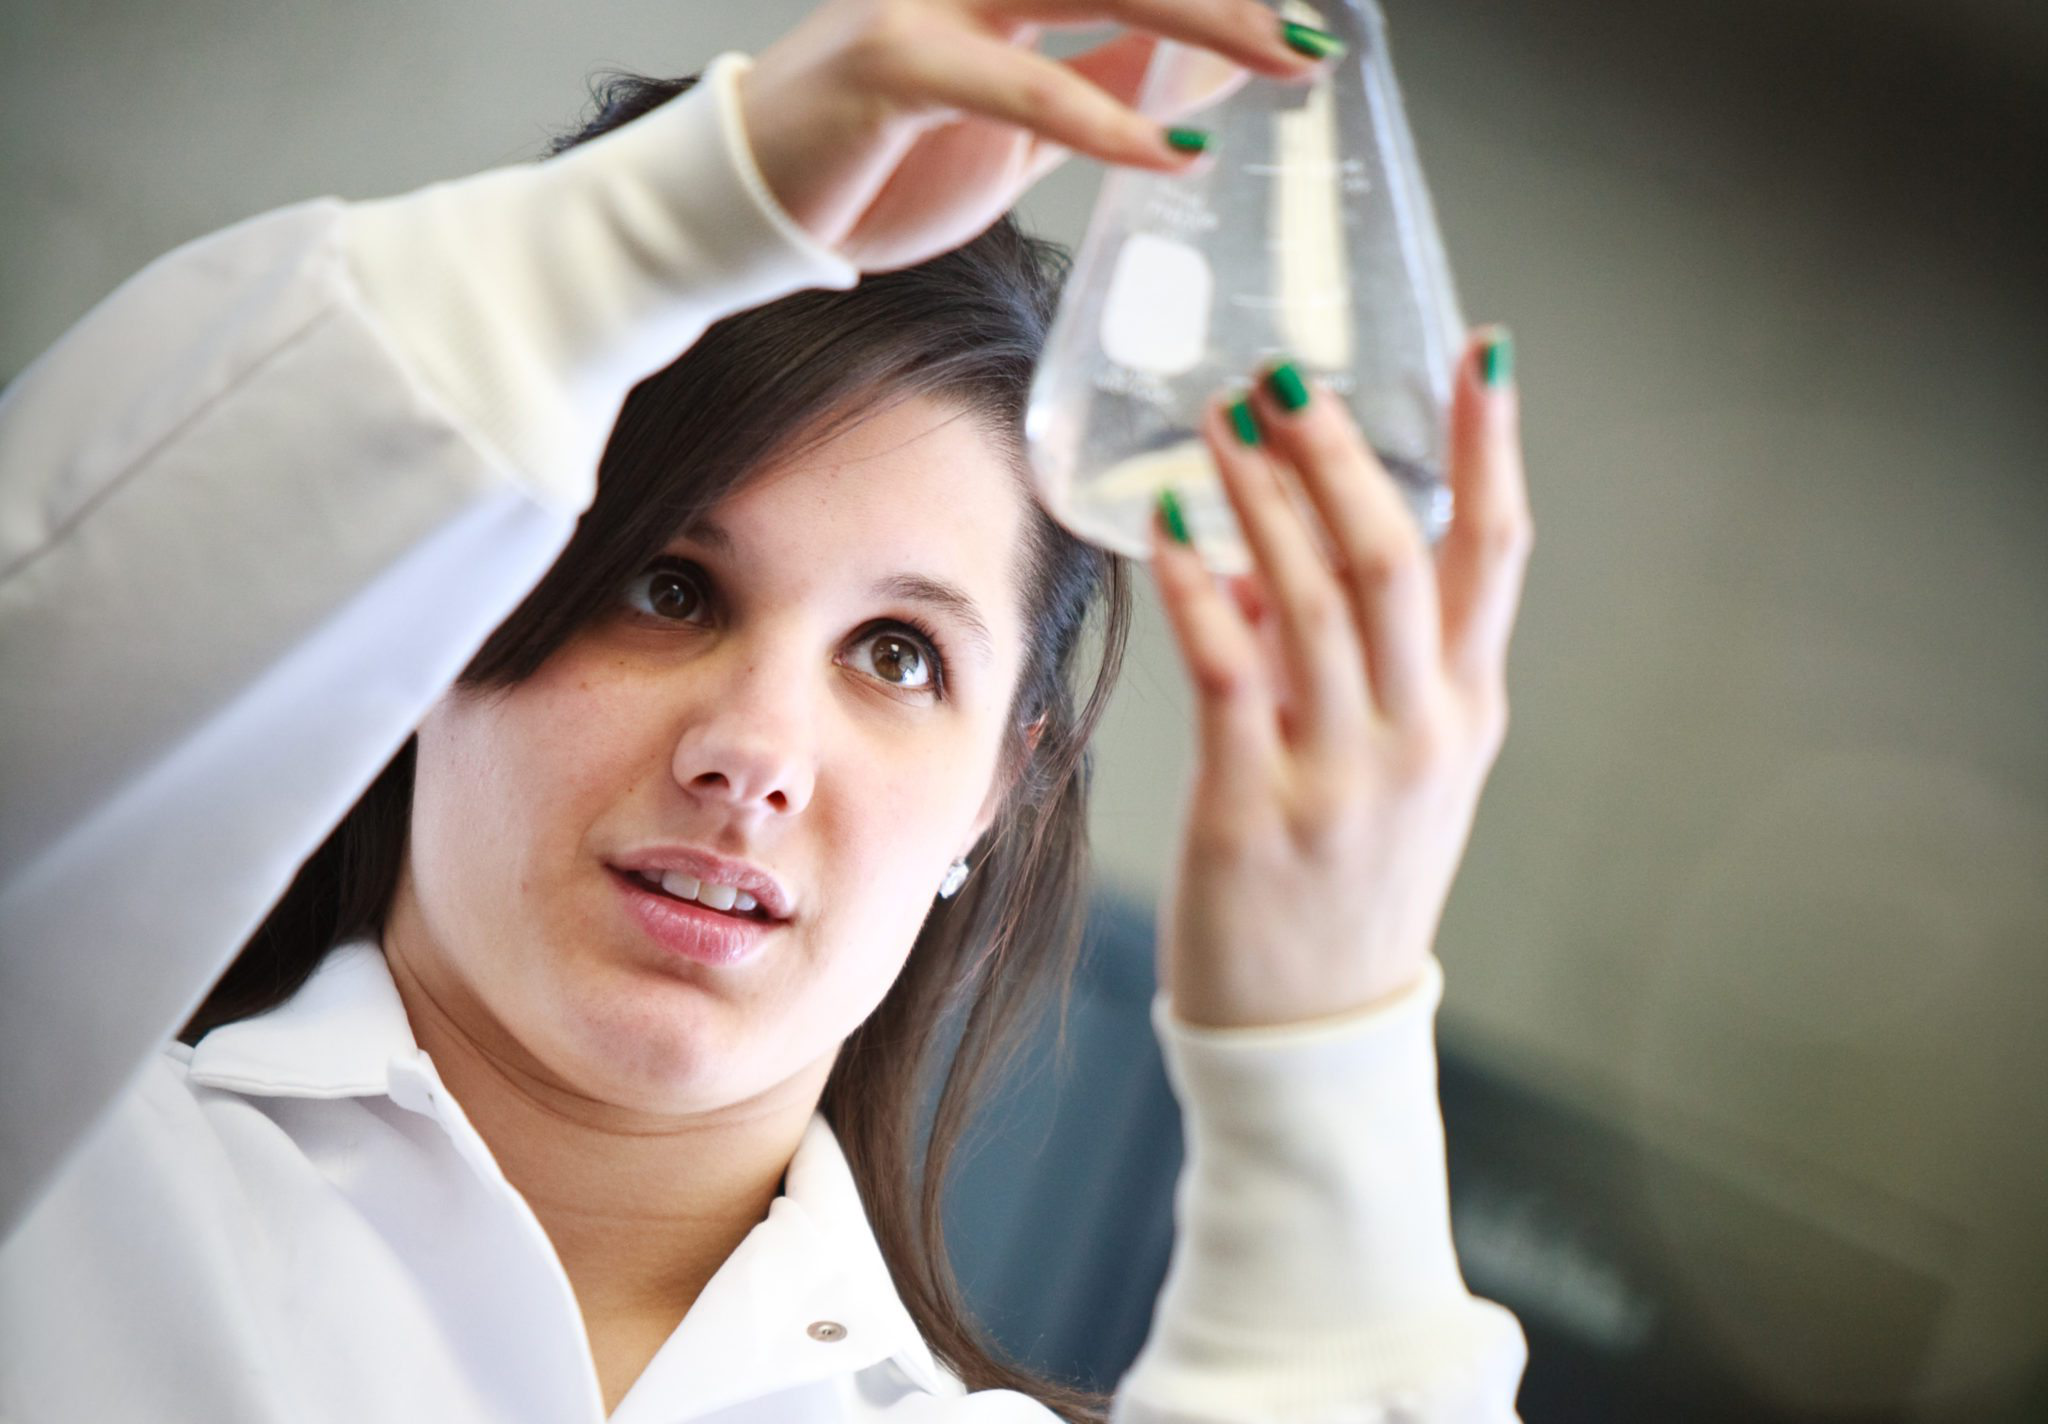 female student looks at glass bottle during science experiment